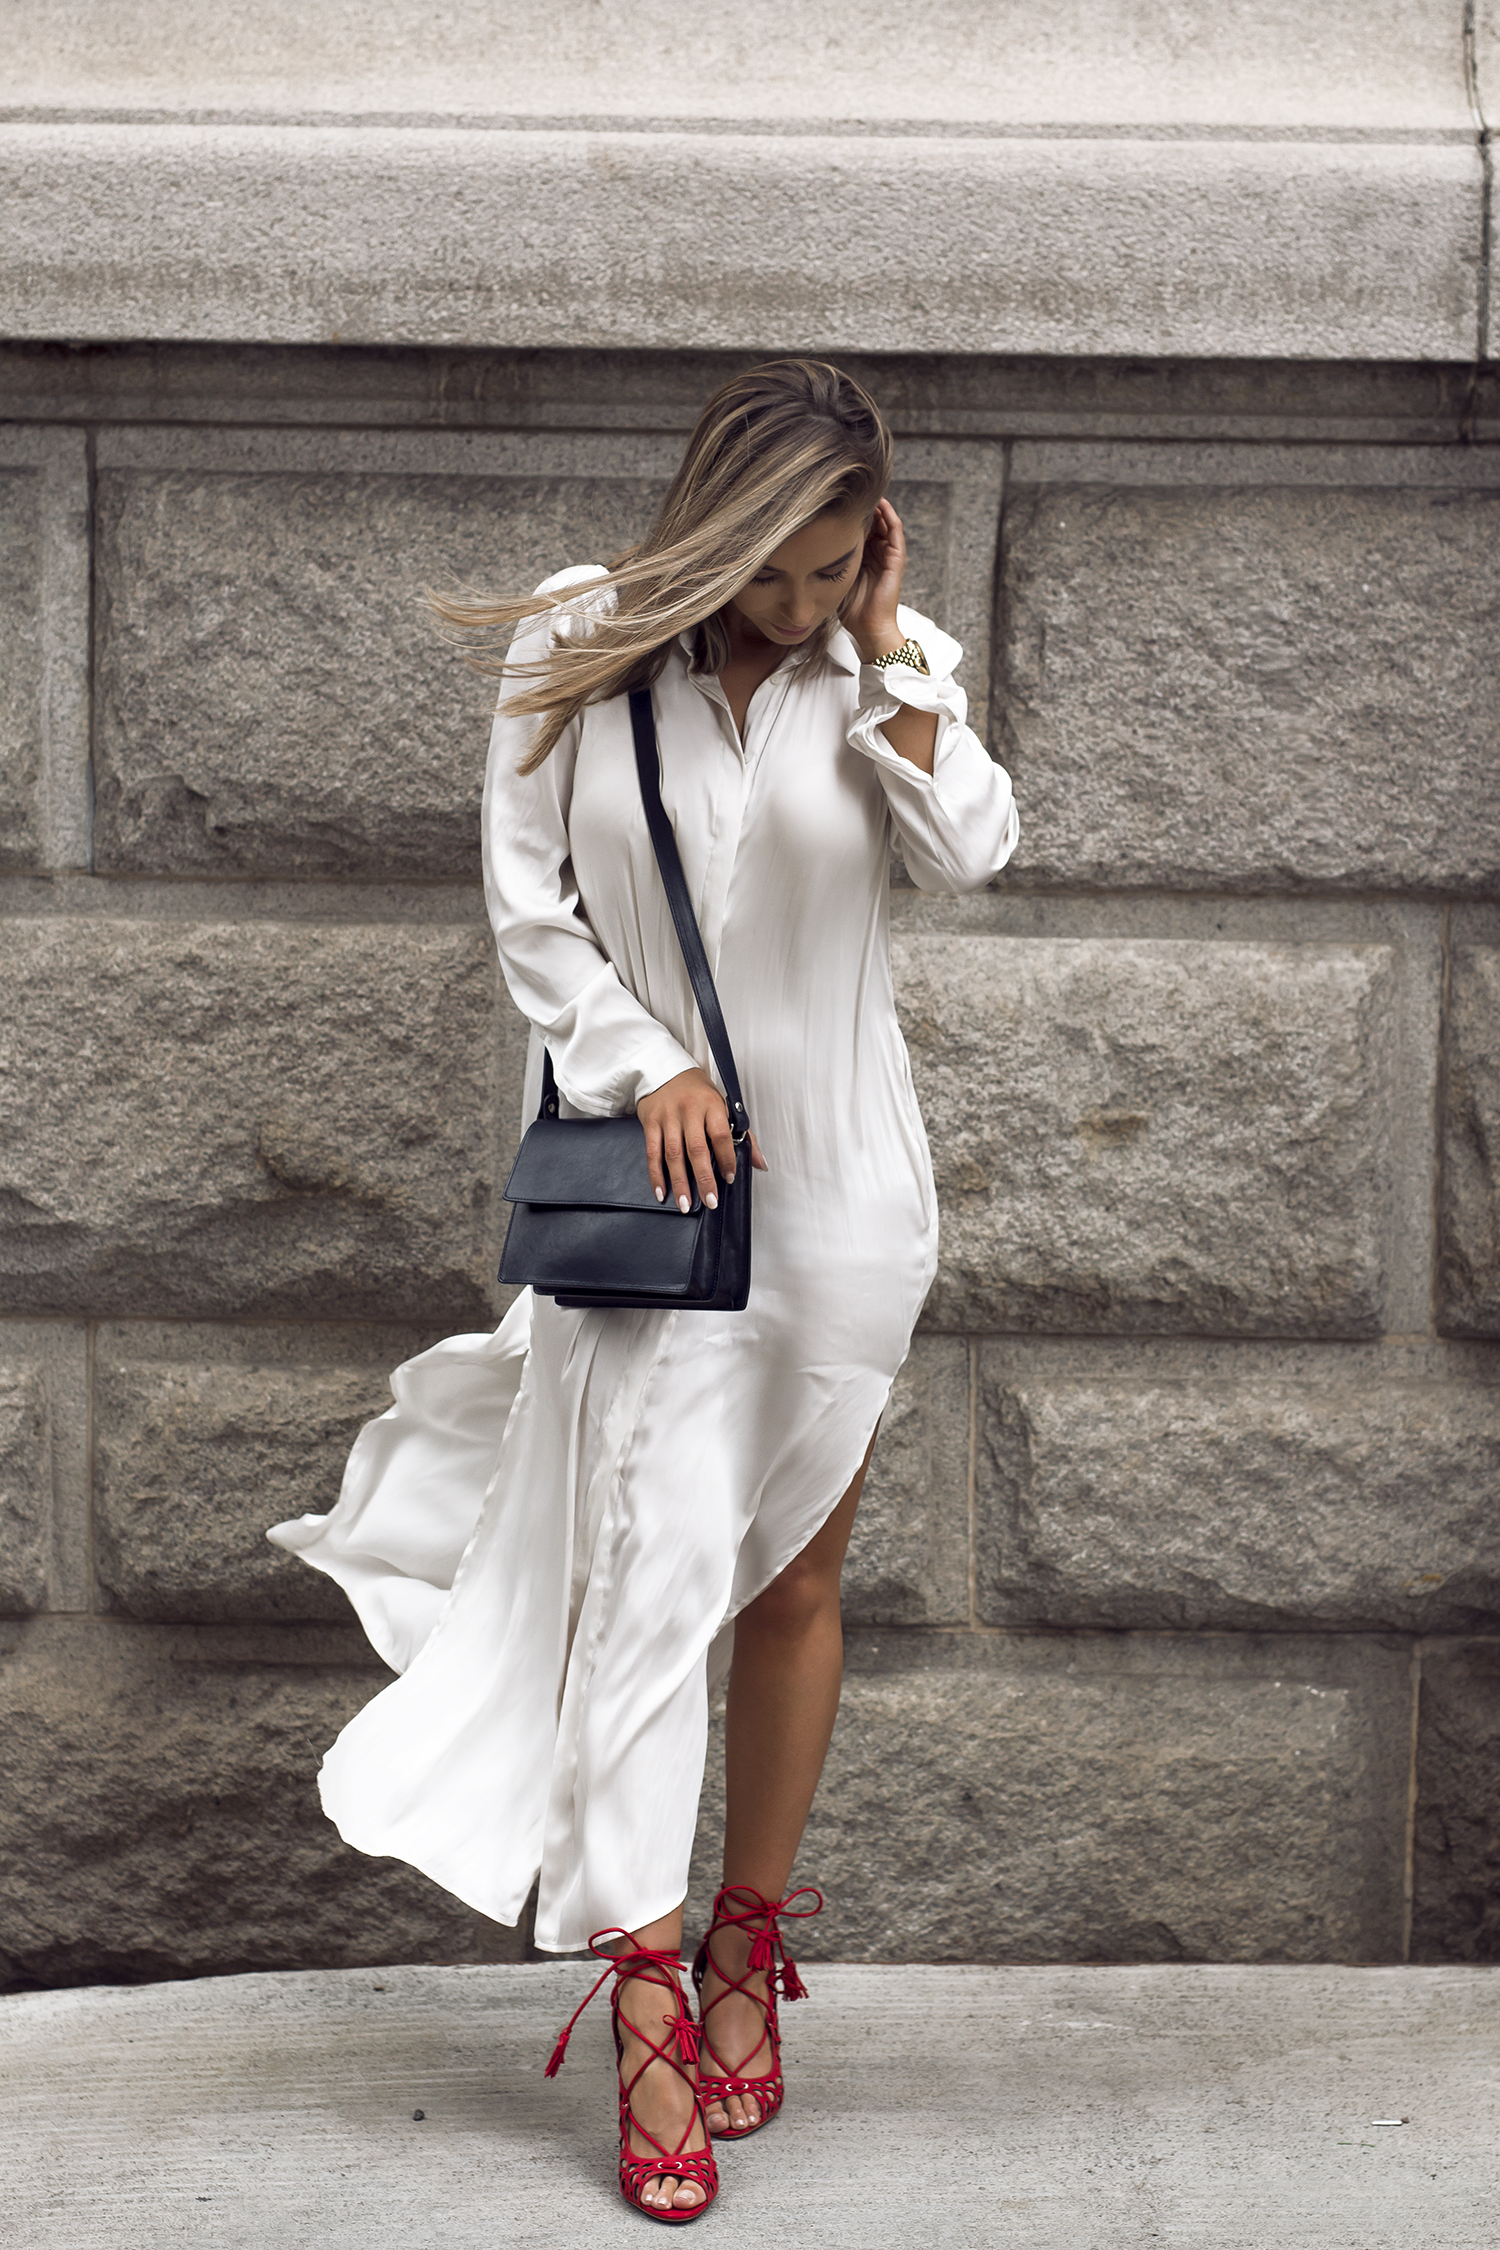 Whoever said the shirt dress wasn't glamorous was absolutely wrong! Take style inspiration from Emilie Tømmerberg, who is looking ravishing in a silk shirt dress with slit detailing for that sexiness we all crave! Dress: H&M, Shoes: Zara